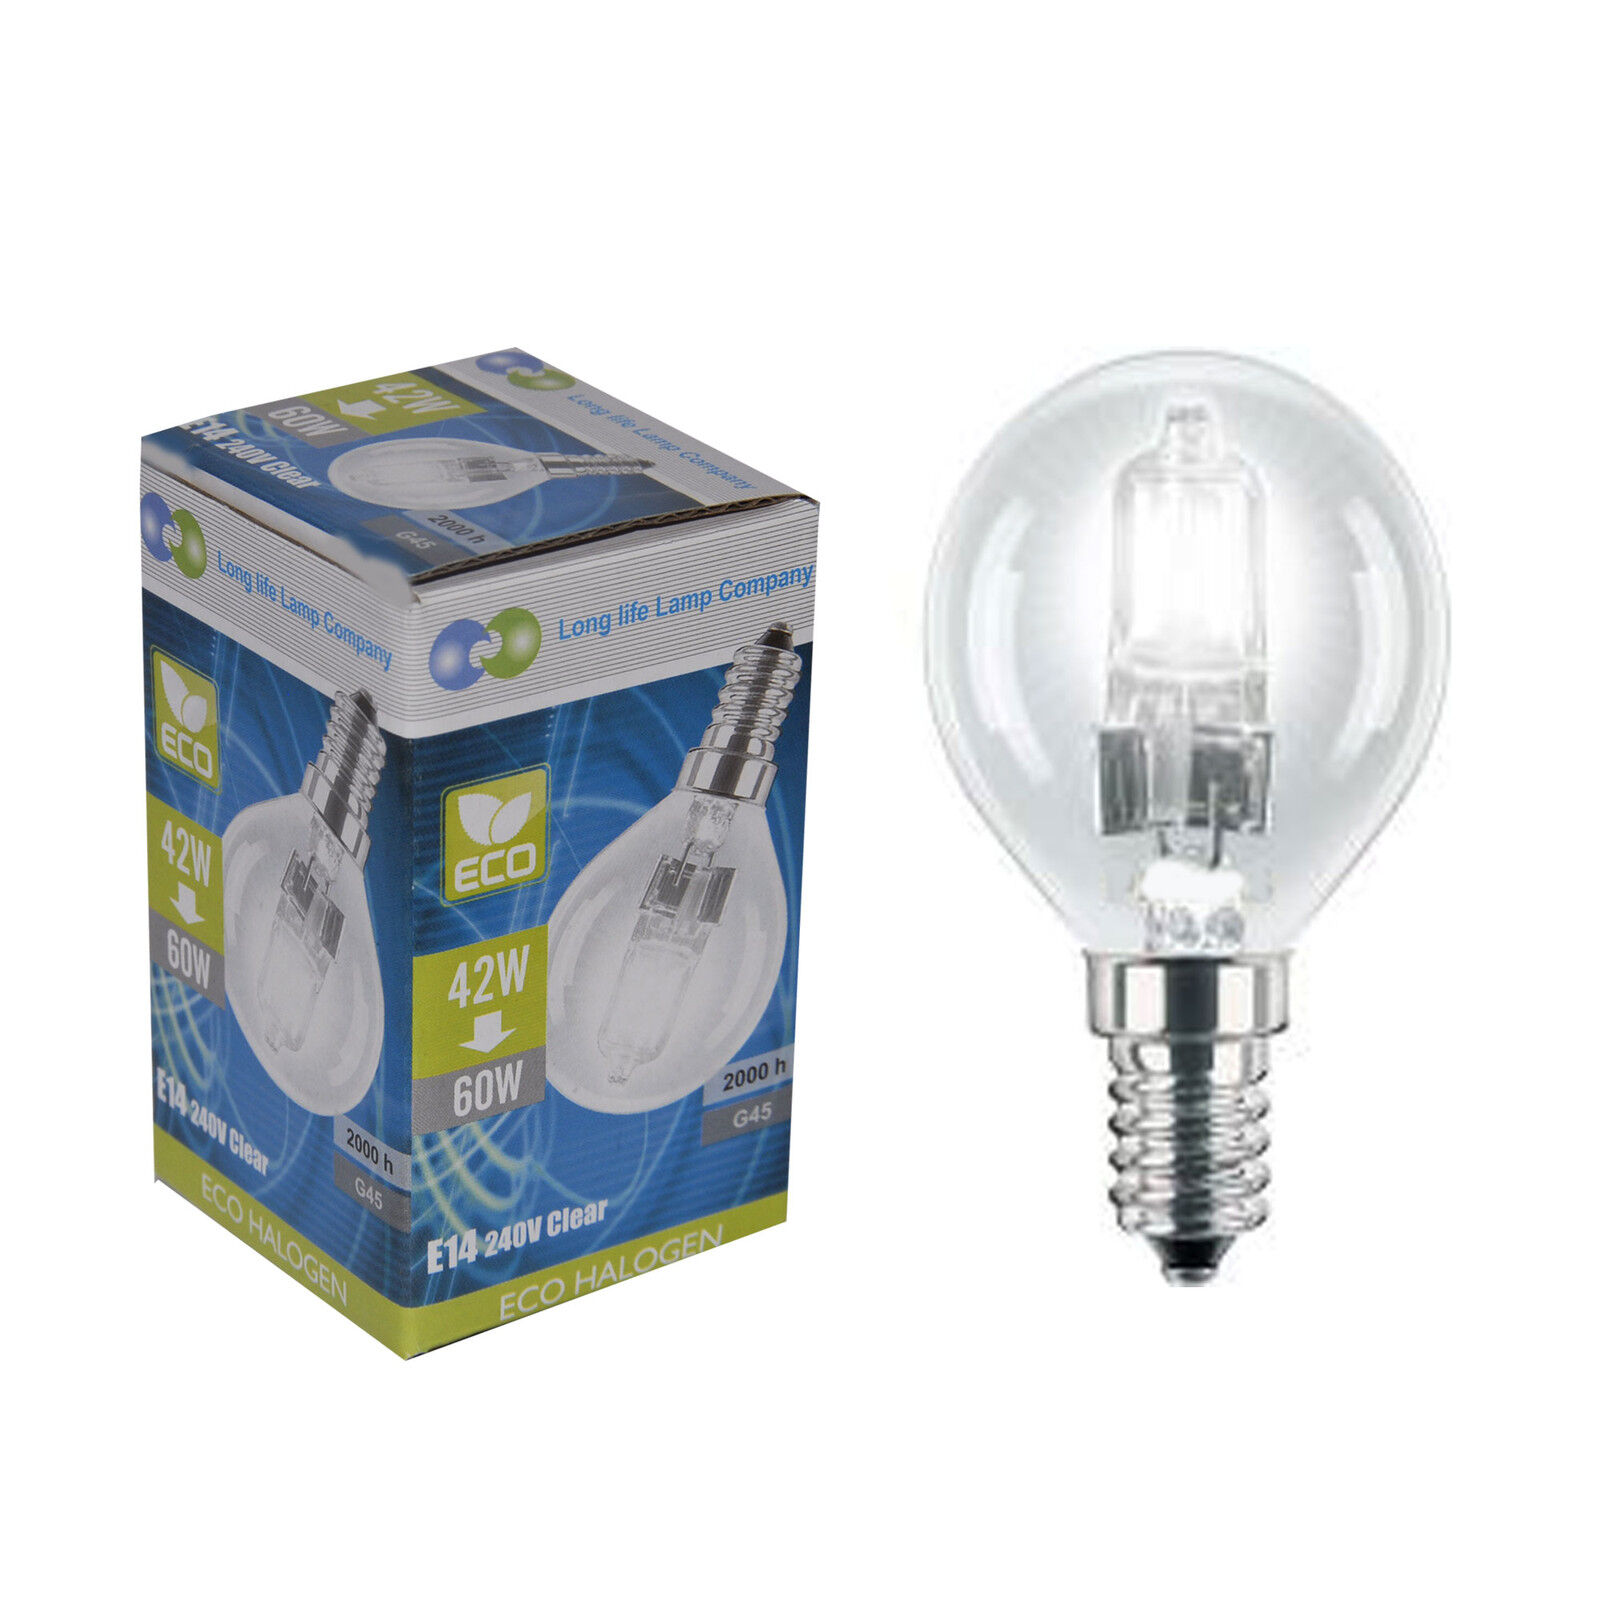 Halogen E14 3 Eco Halogen Energy Saving Golf Balls Light Bulb 42w 60w